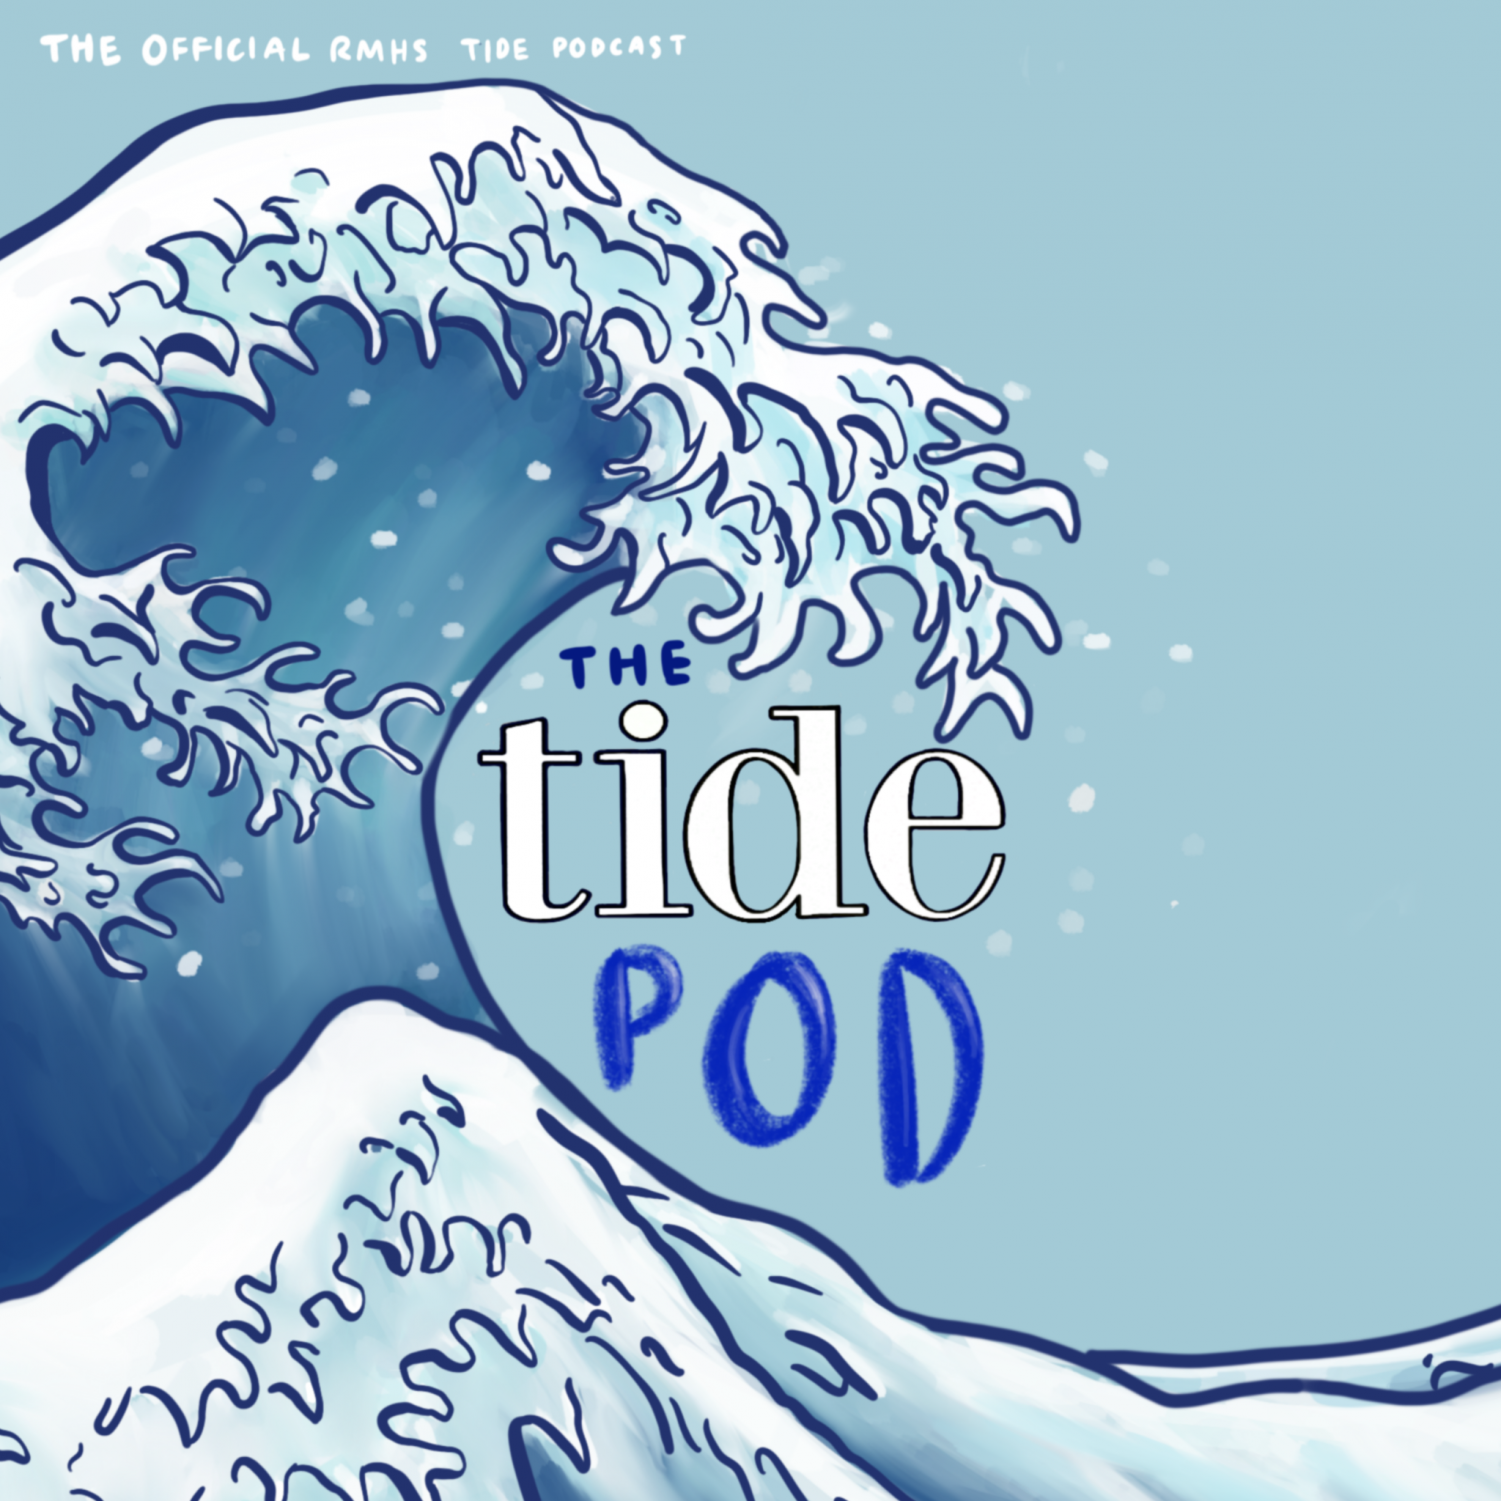 The TidePod, which was started in early 2019, is currently in its second season. Graphic designed by Valerie Wang.